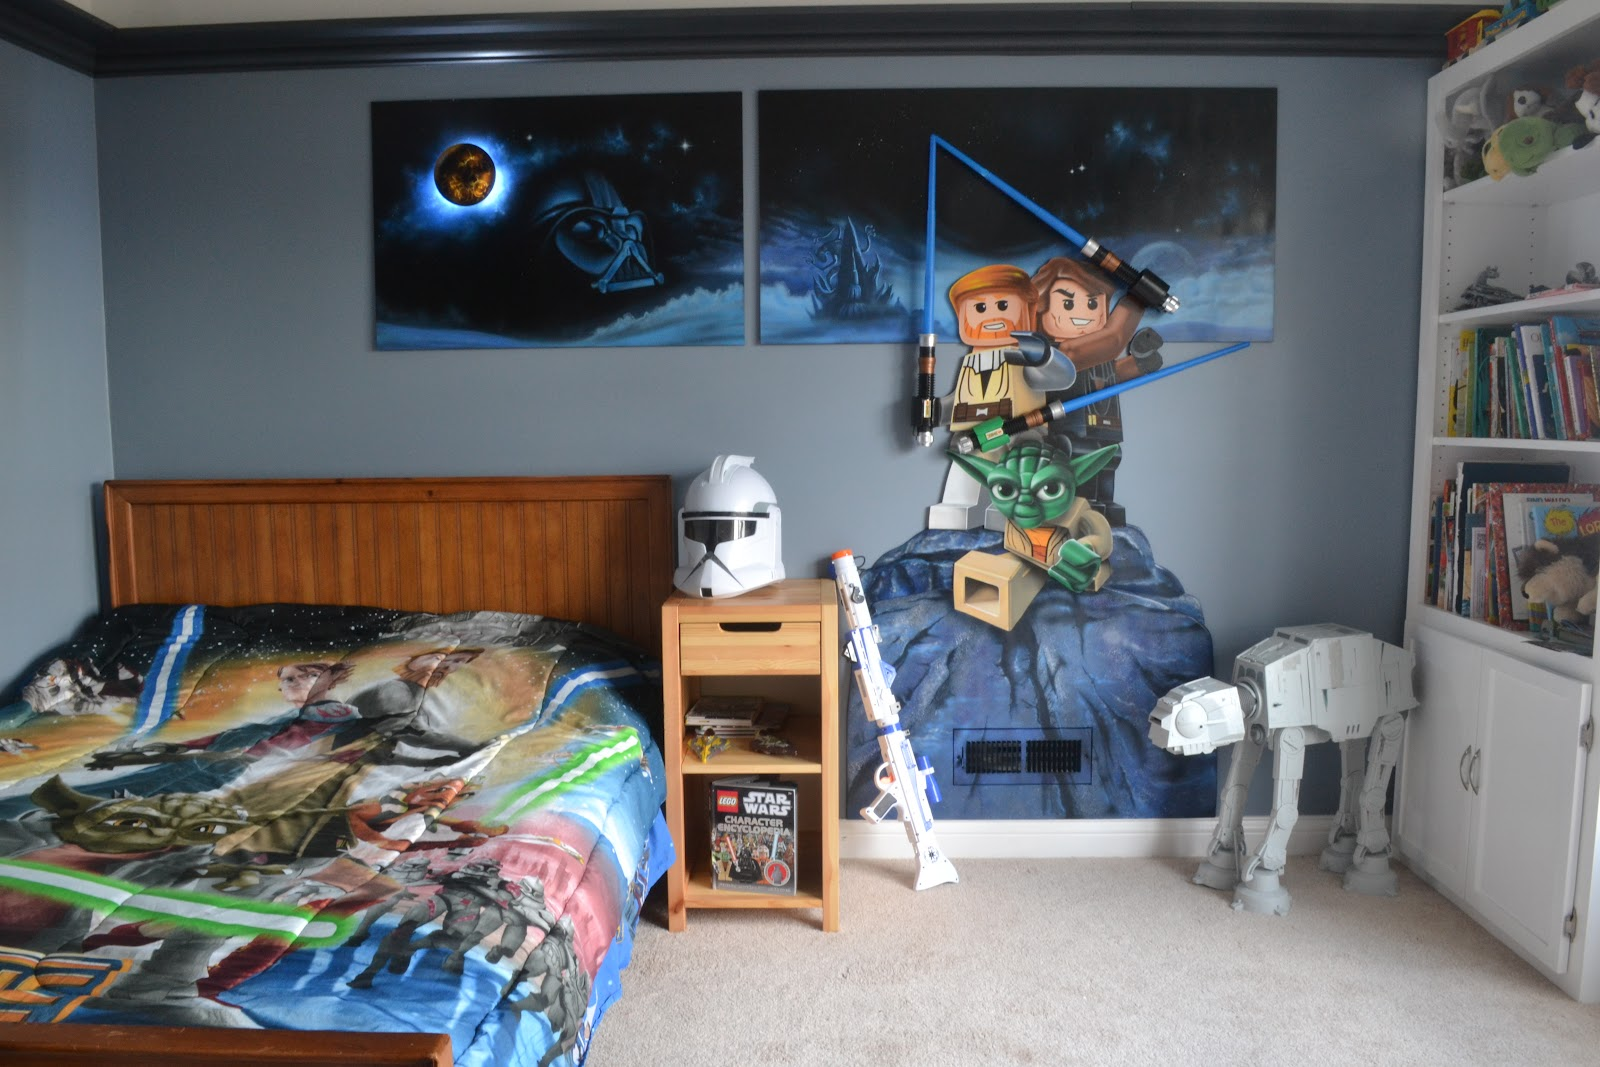 Star Wall Decor Ideas: 45 Best Star Wars Room Ideas For 2017